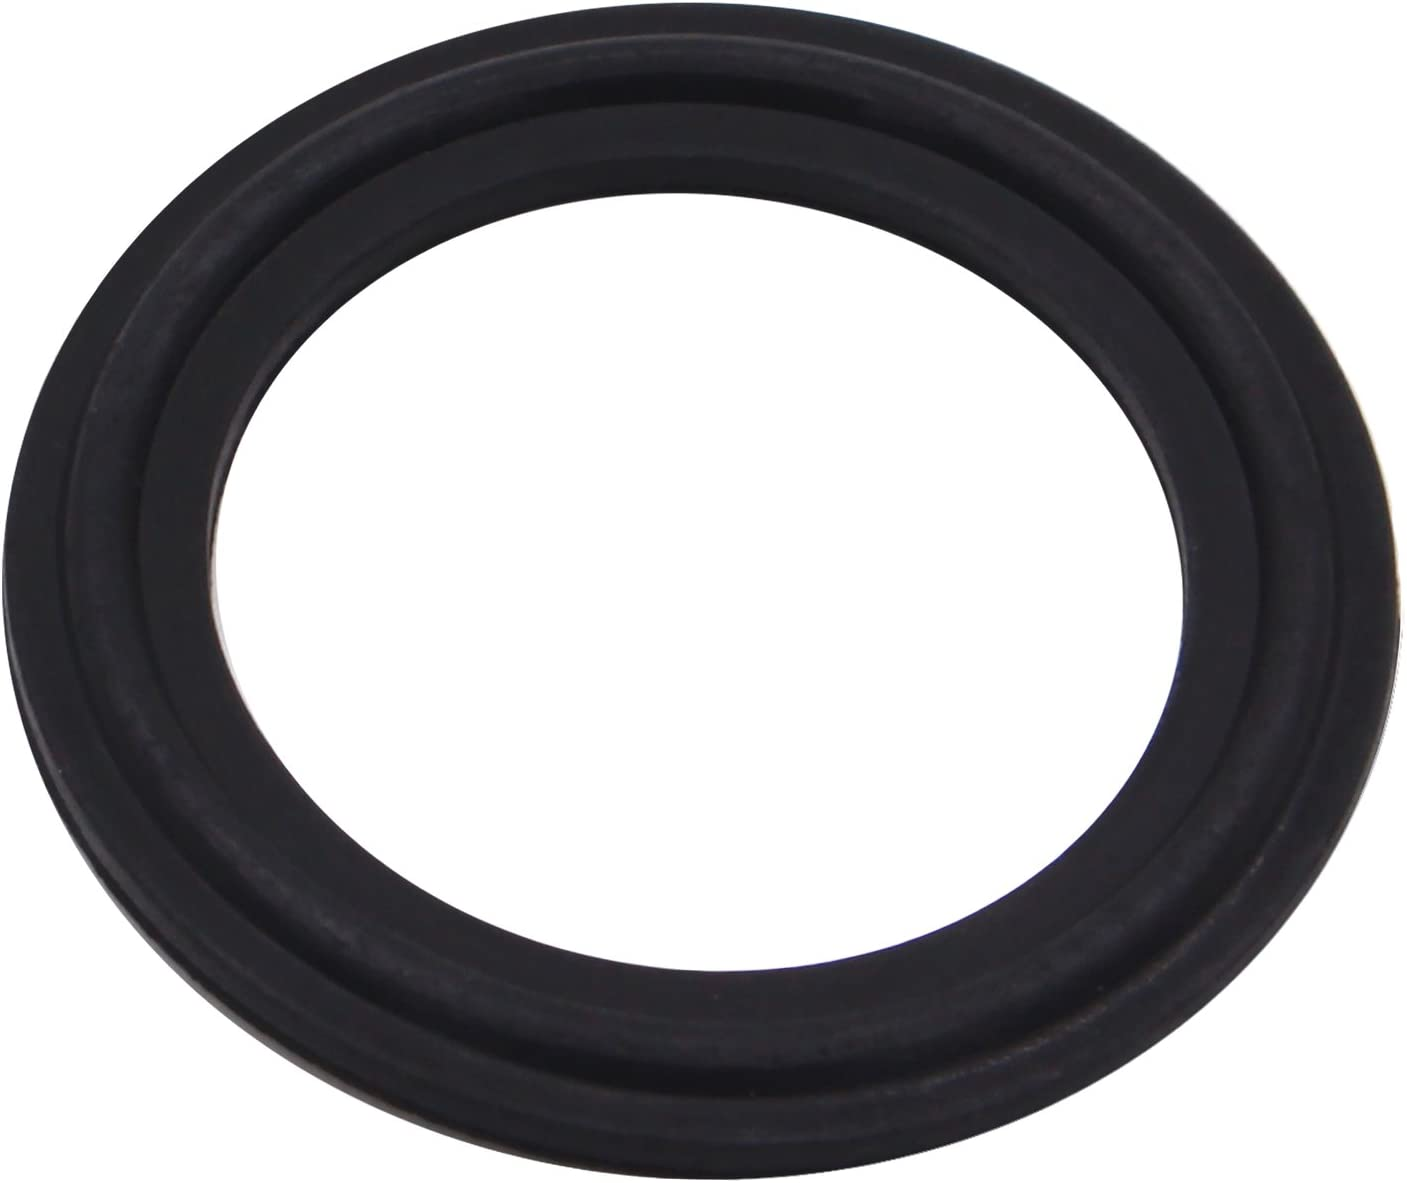 DERNORD FKM Rubber Gasket Tri-clamp O-Ring Fits Sanitary Tri-Clover Type Ferrule (Tri-Clamp Size: 1.5 Inch)